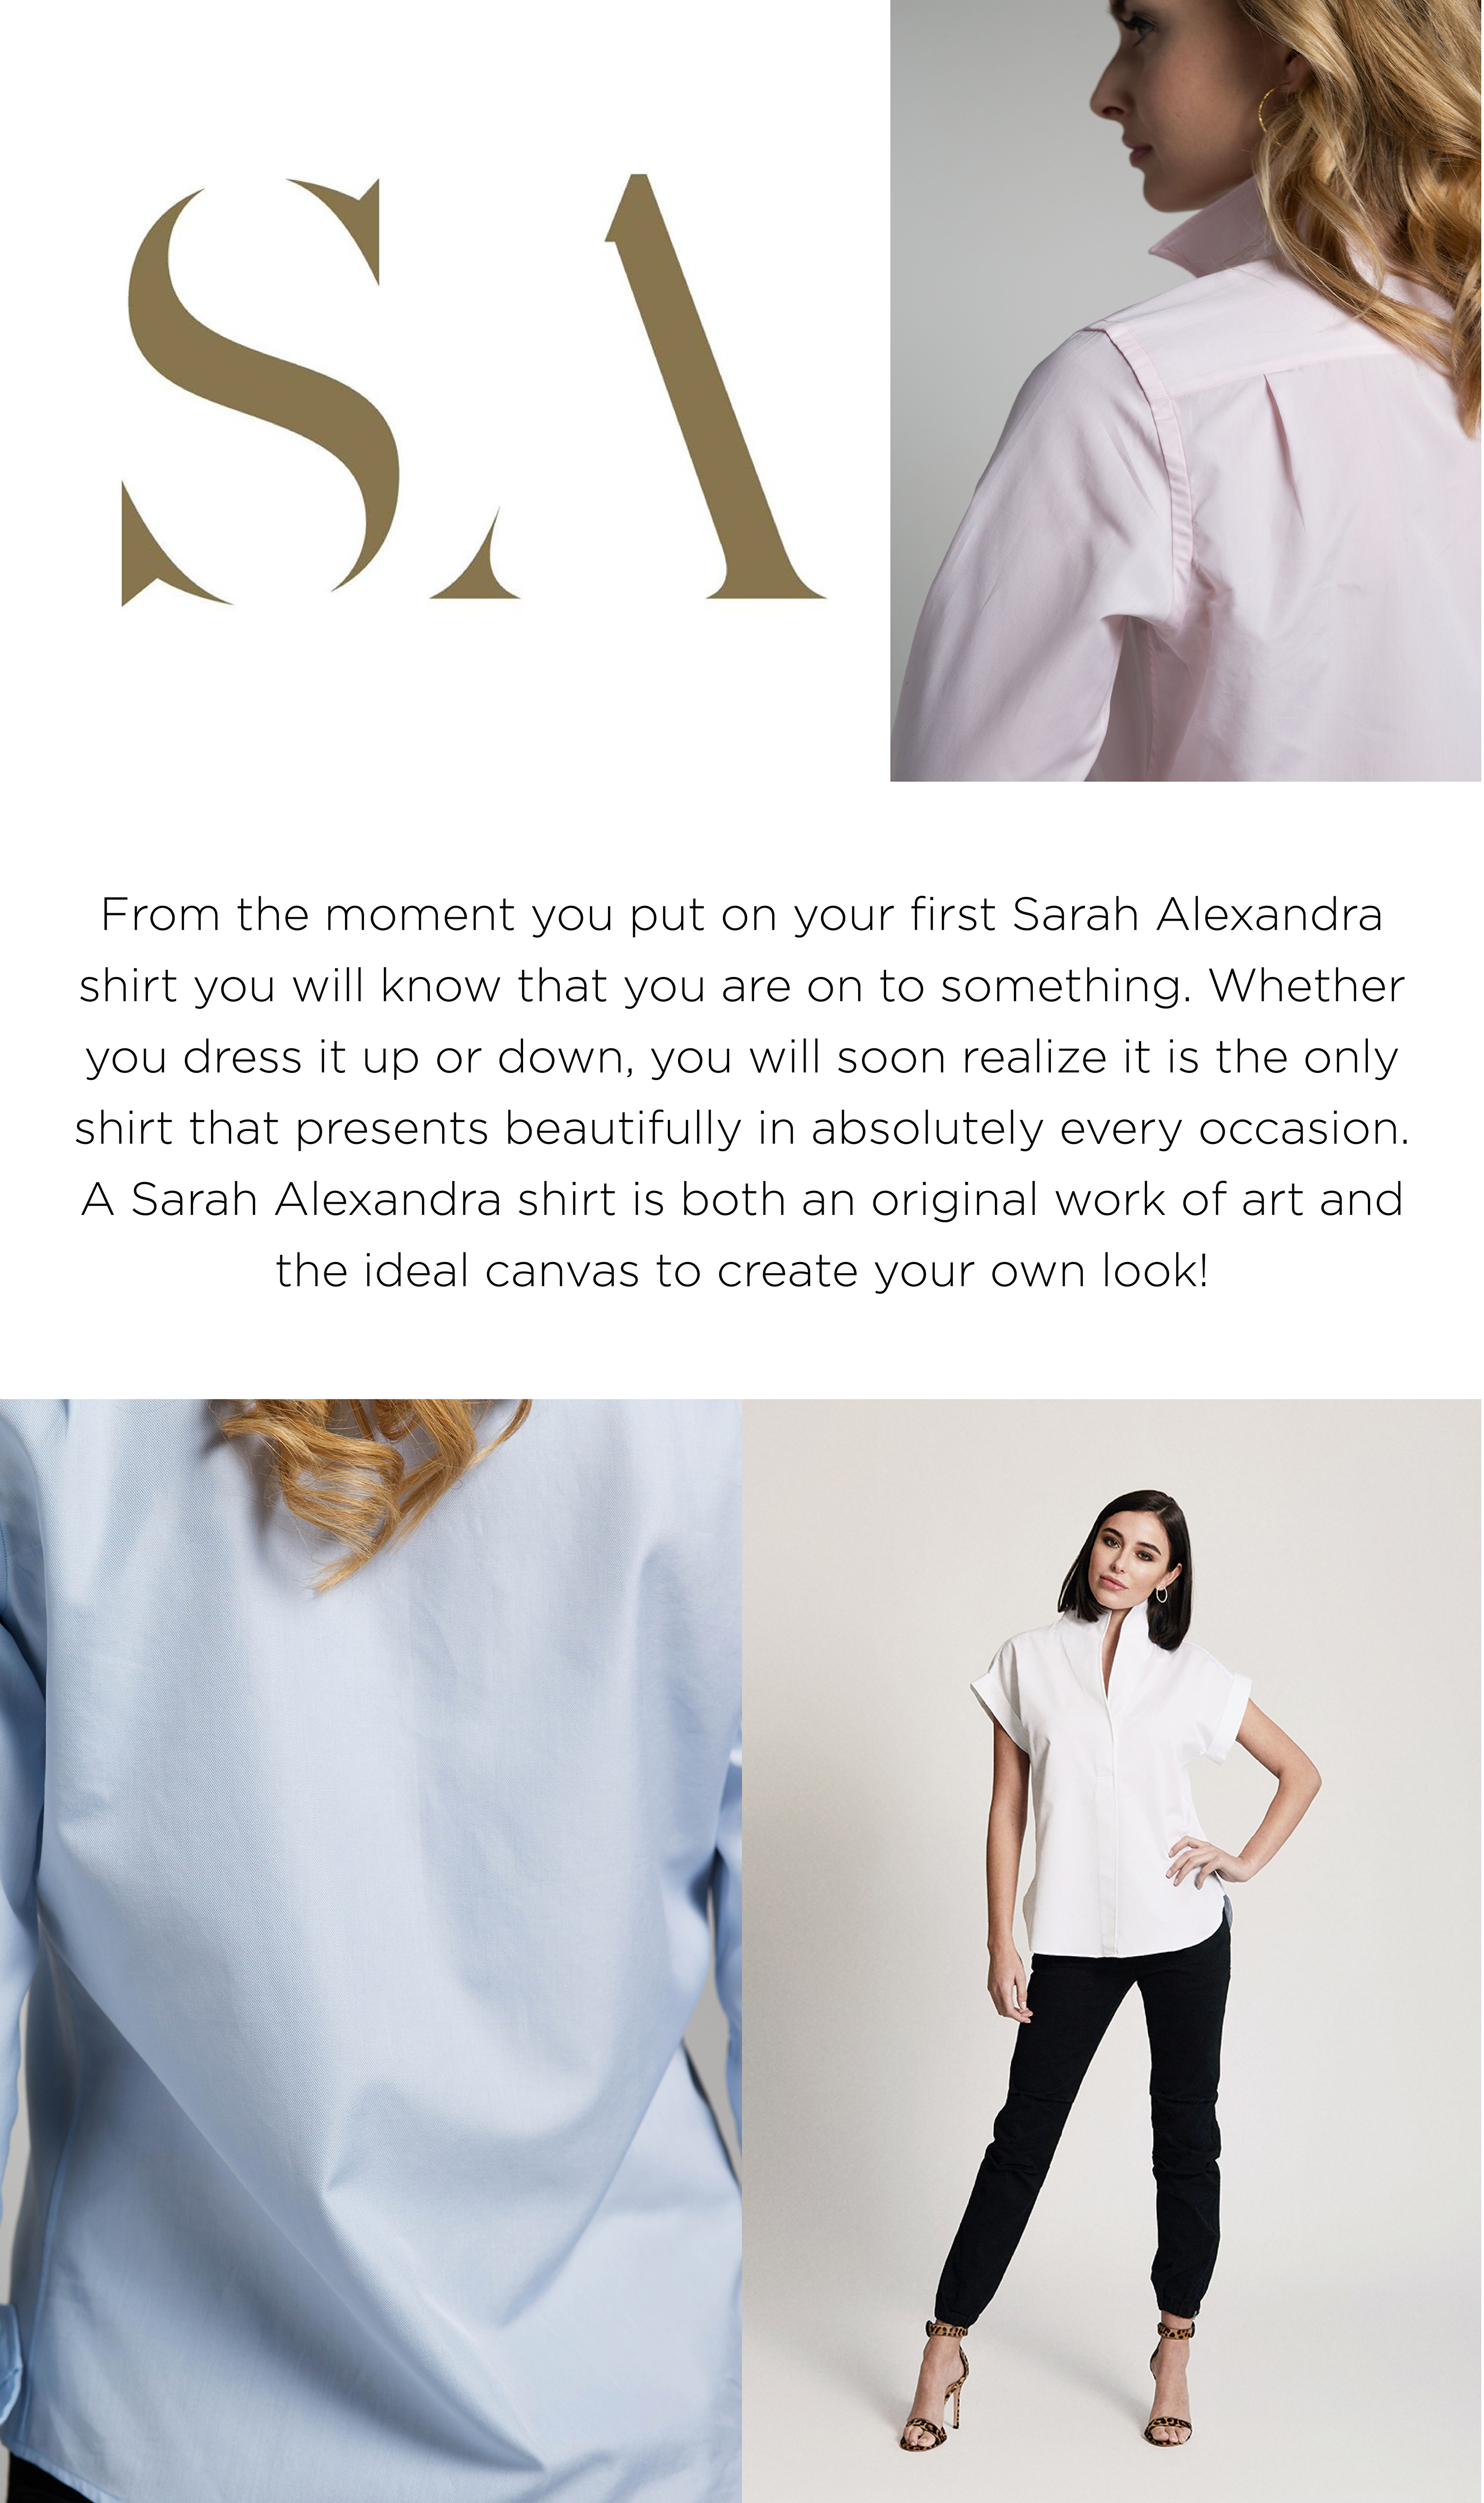 From the moment you put on your first Sarah Alexandra shirt you will know that you are on to something. Whether you dress it up or down, you will soon realize it is the only shirt that presents beautifully in absolutely every occasion.